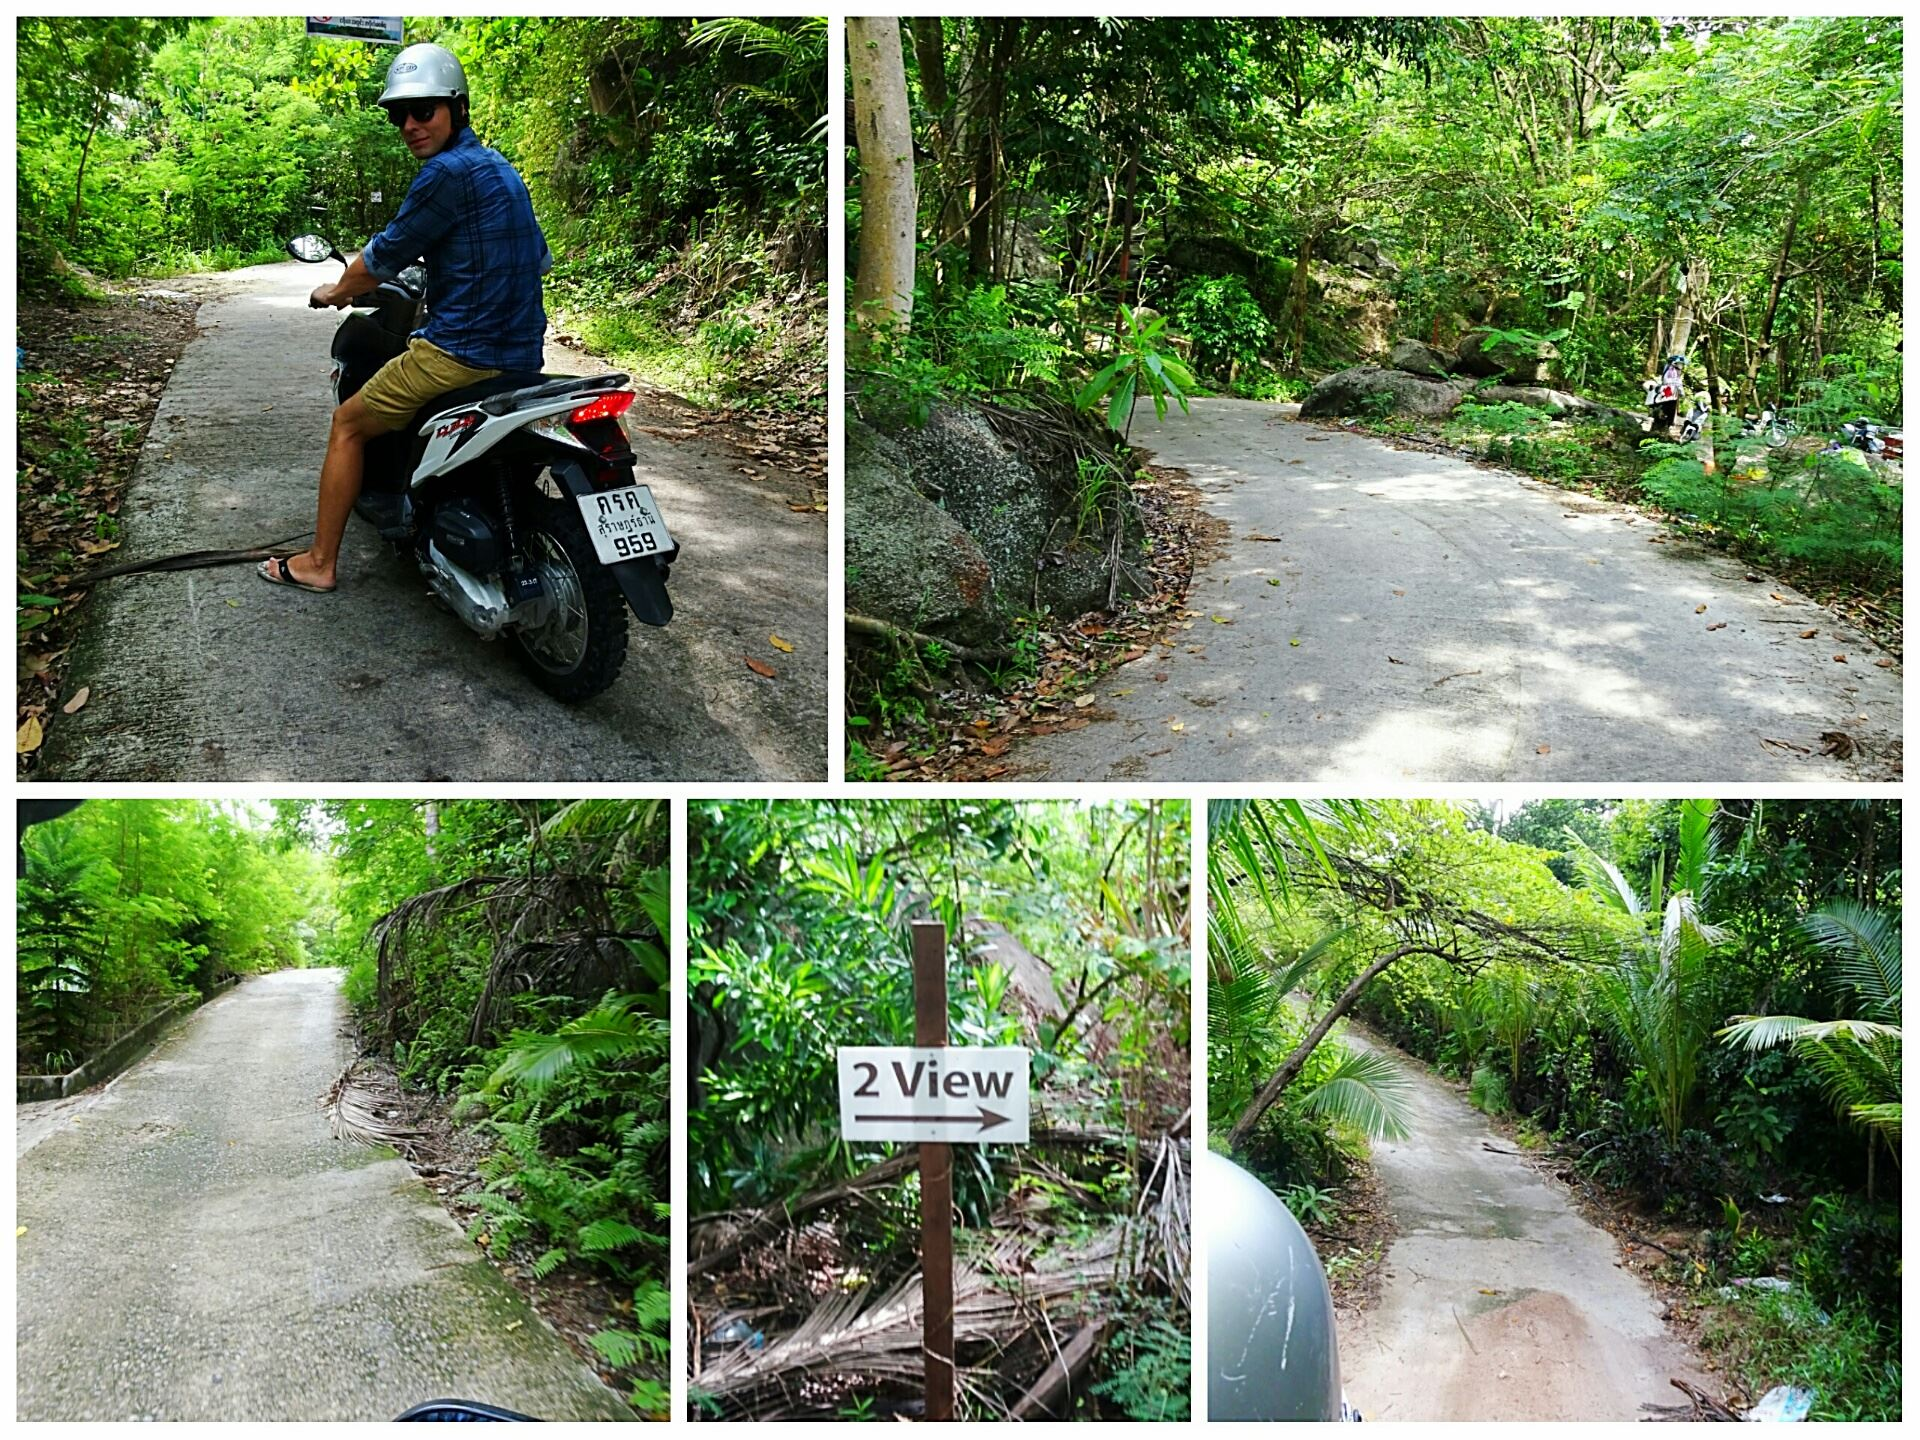 KOH TAO SCOOTER TOUR - Beaches, Bays & Viewpoints - Hungry